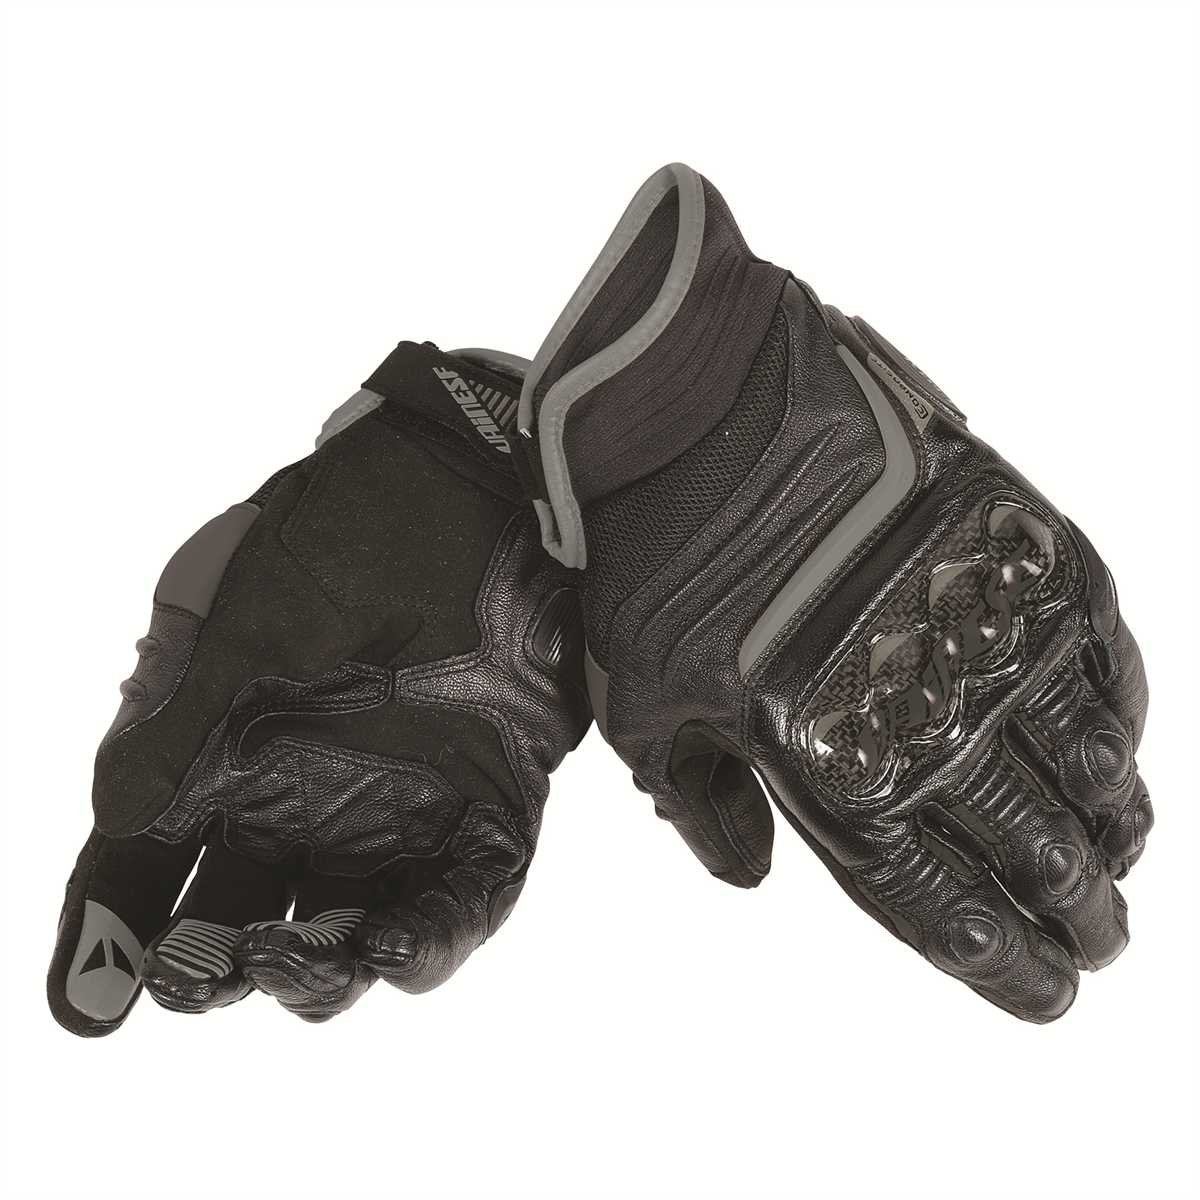 Motorcycle gloves tight or loose - Dainese Carbon D1 Short Mens Leather Motorcycle Gloves